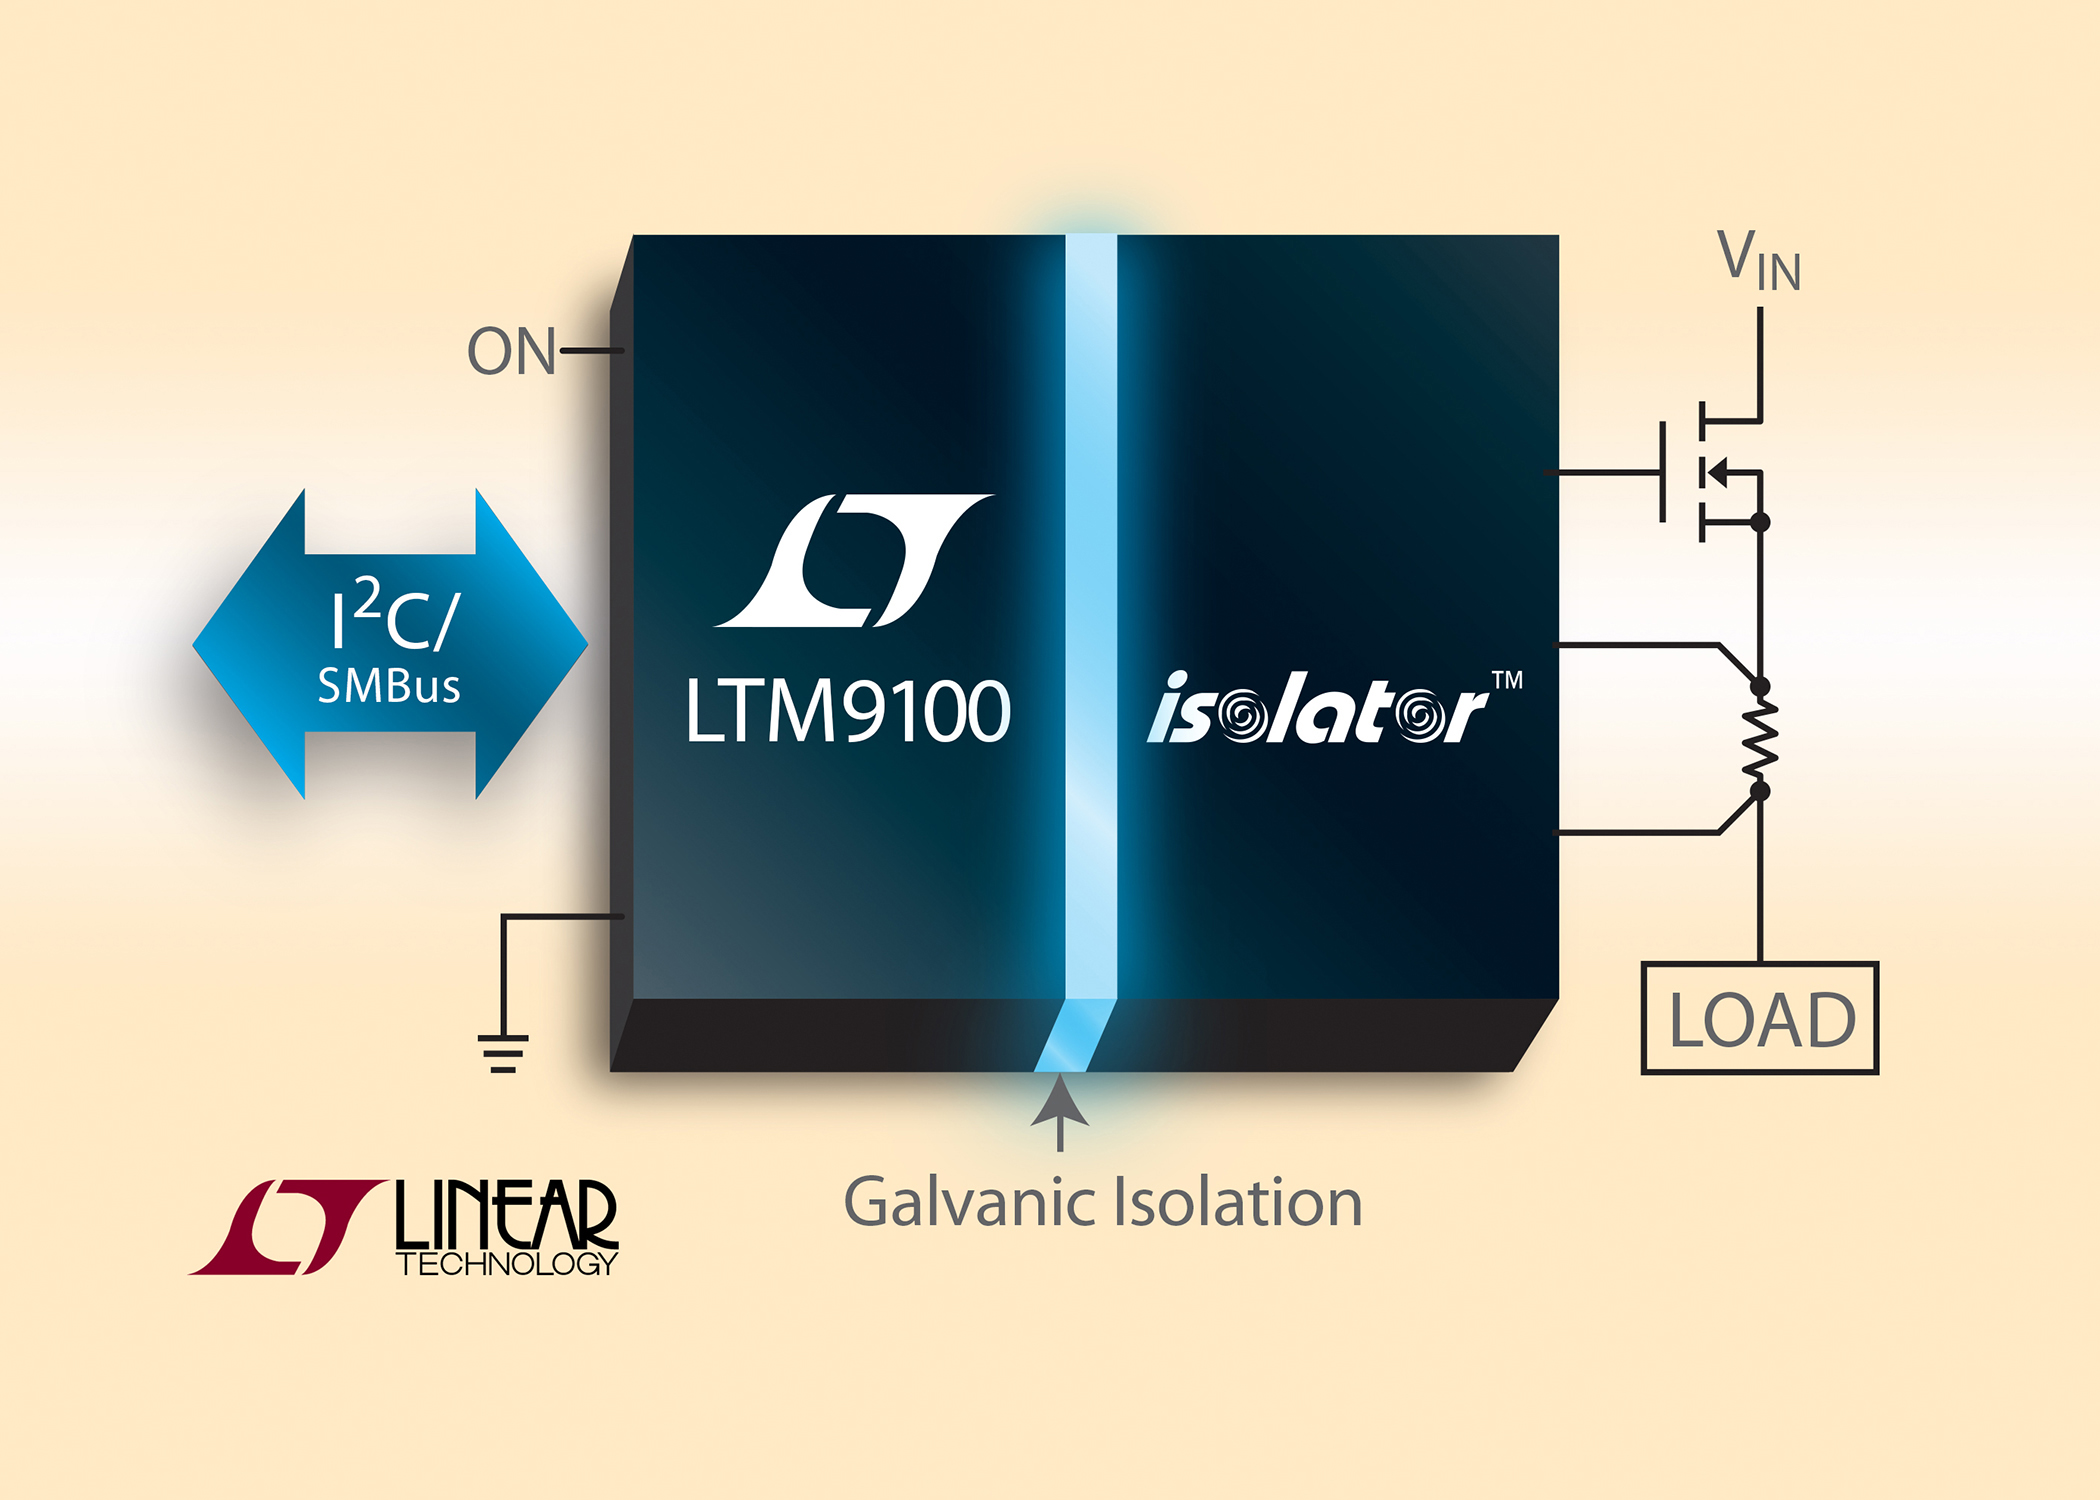 Switch controller protects and monitors high-voltage DC power supplies